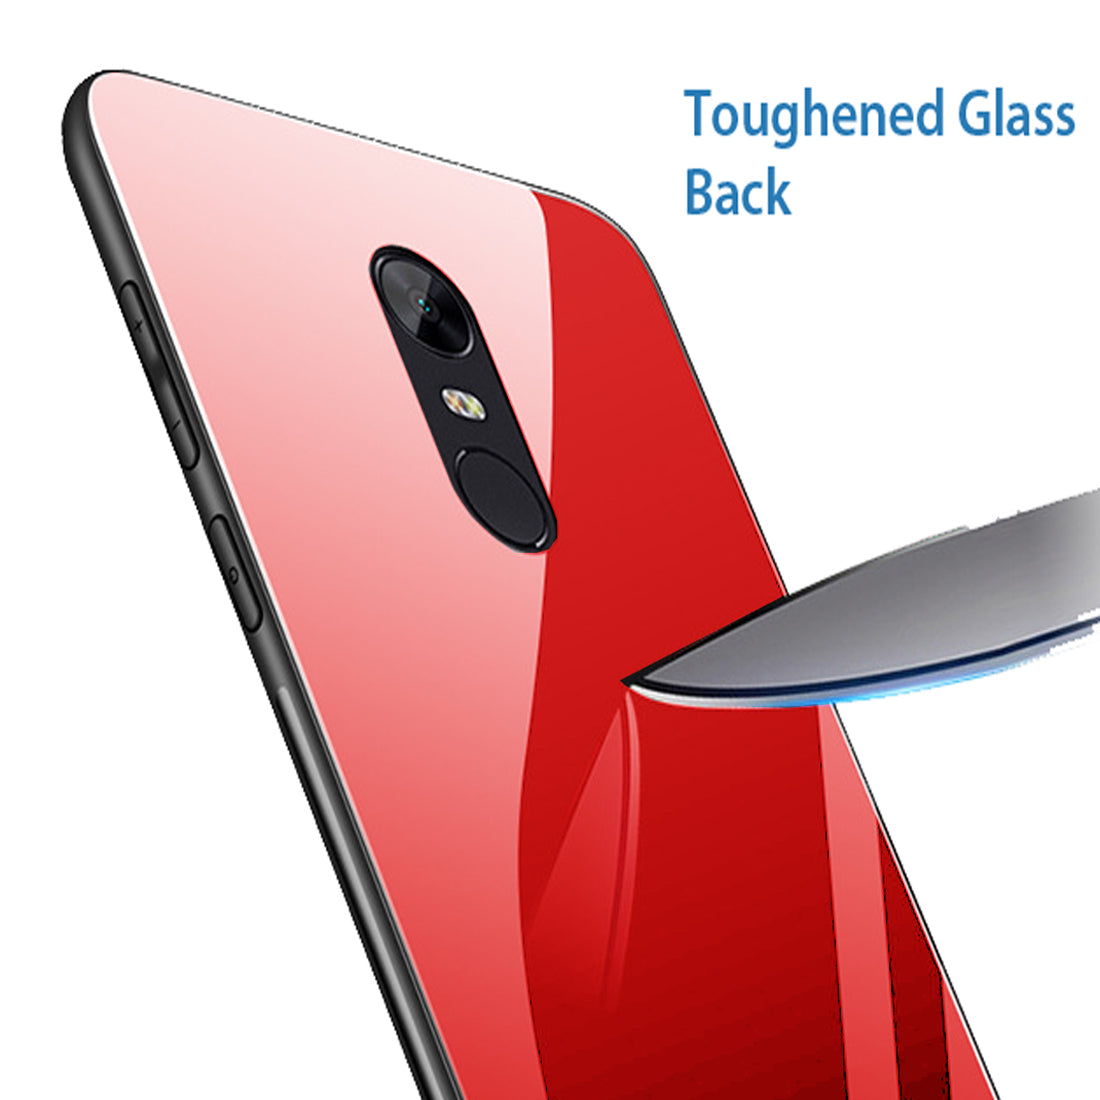 Toughened Glass Back Shock Proof Slim Case Cover for Xiaomi Redmi Note 5 - Red - Mobizang